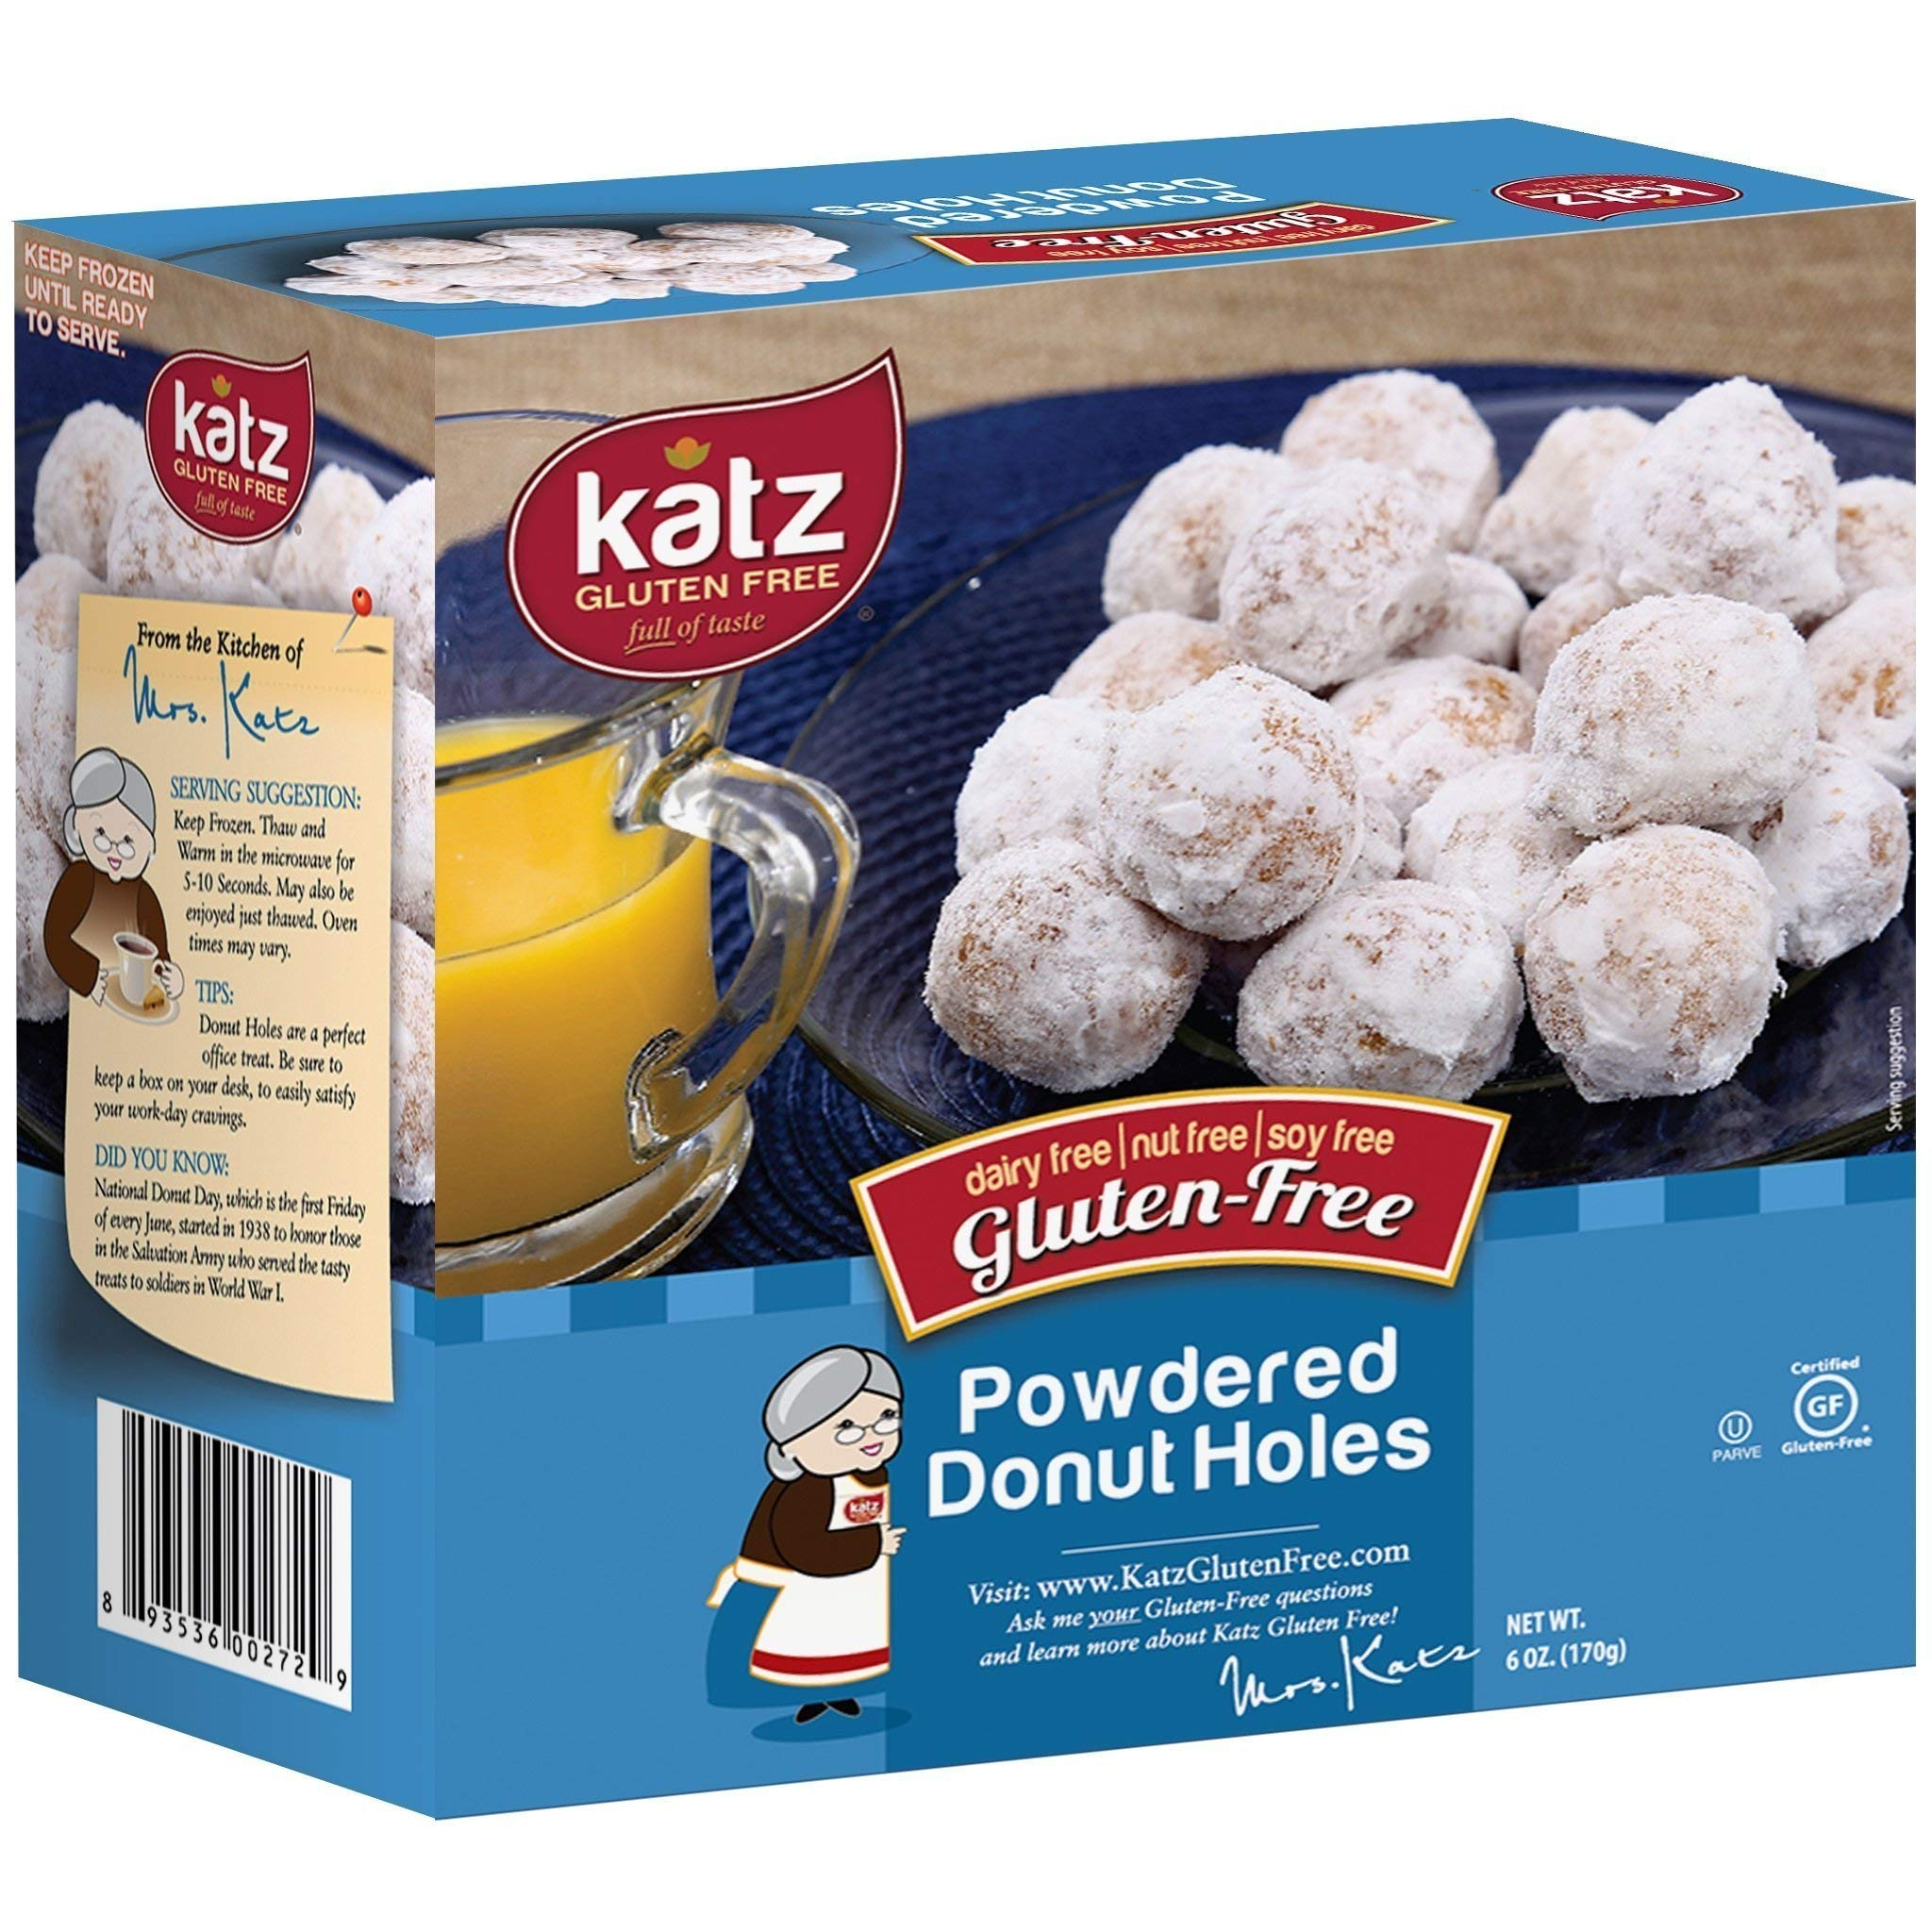 Katz Gluten Free Powdered Donut Holes | Dairy, Nut, Soy and Gluten Free | Kosher (6 Packs, 6 Ounce Each) by Katz Gluten Free